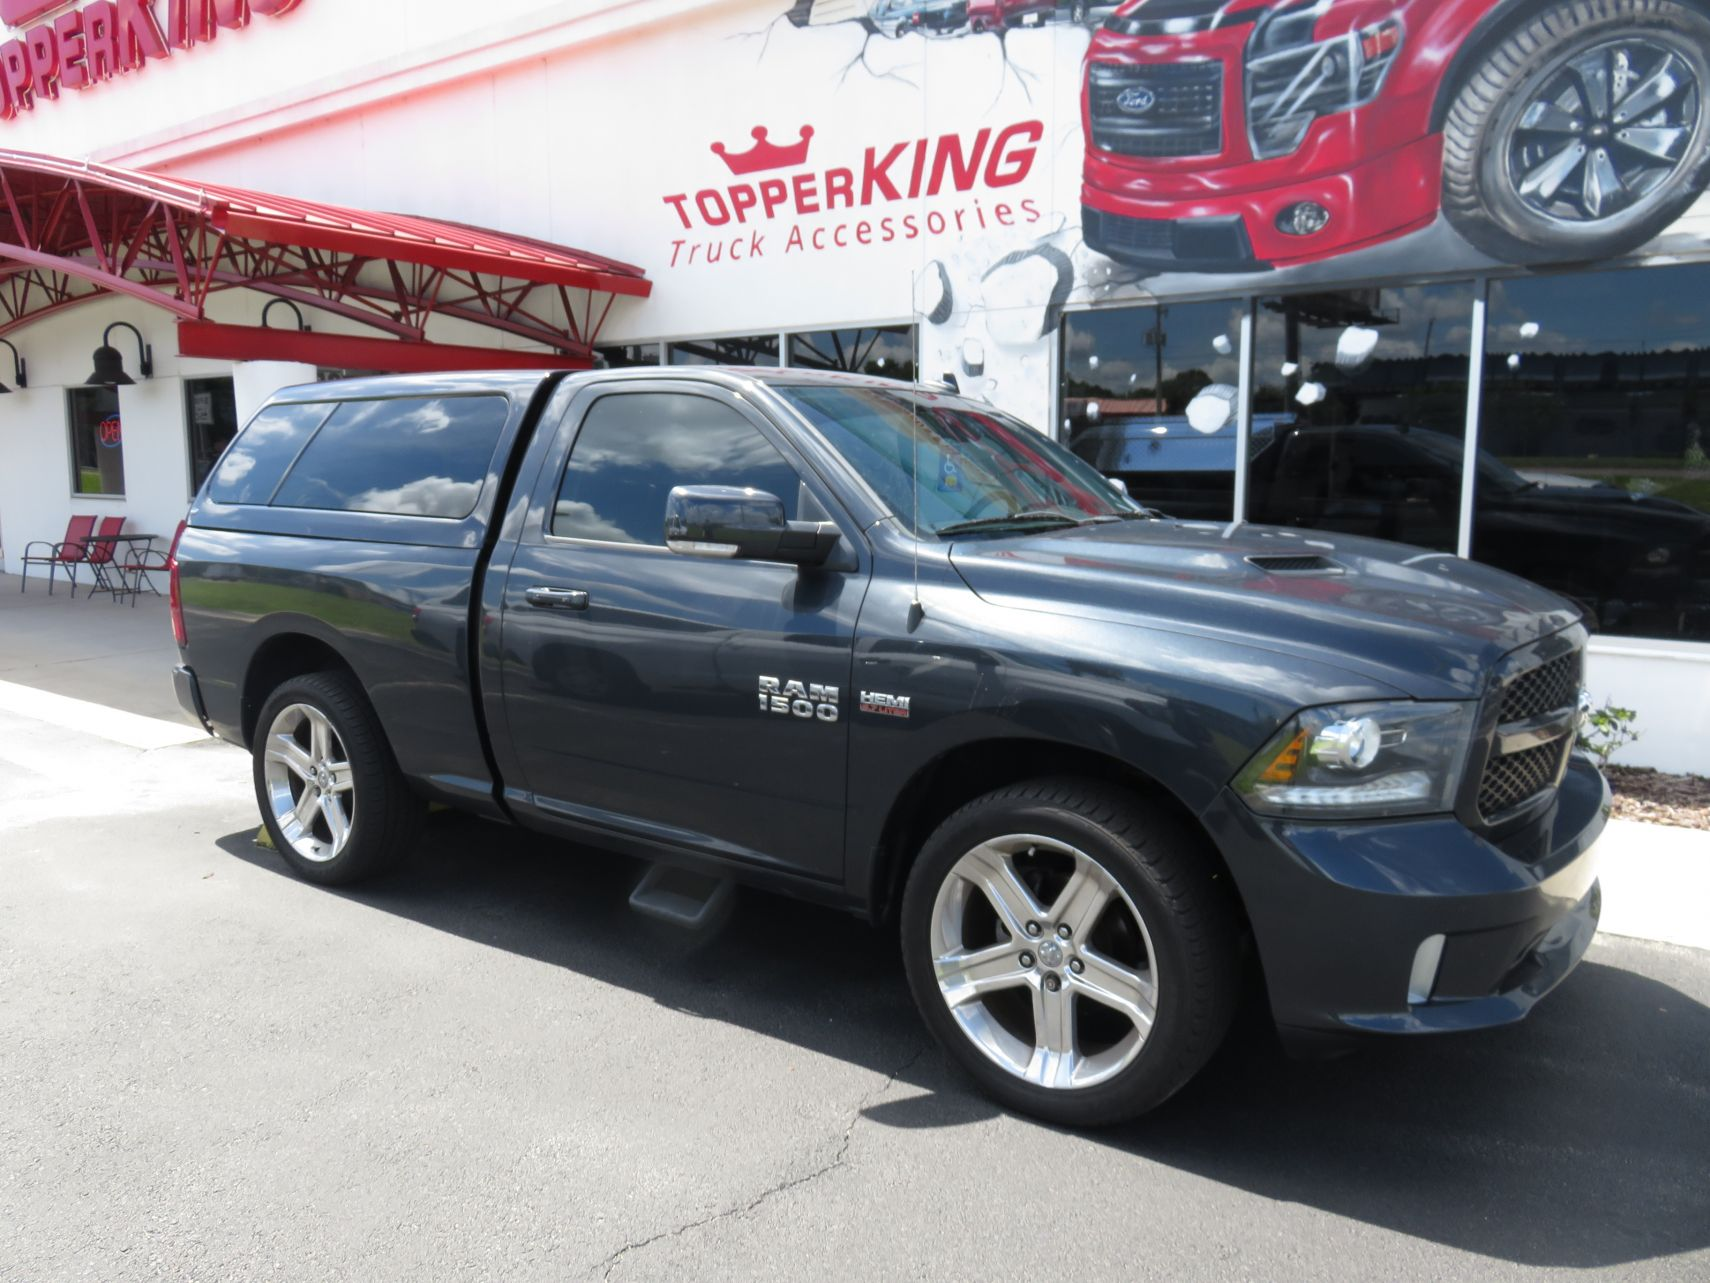 2017 Dodge Ram Accessories >> 2017 Dodge Ram 1500 Ranch Icon Topperking Topperking